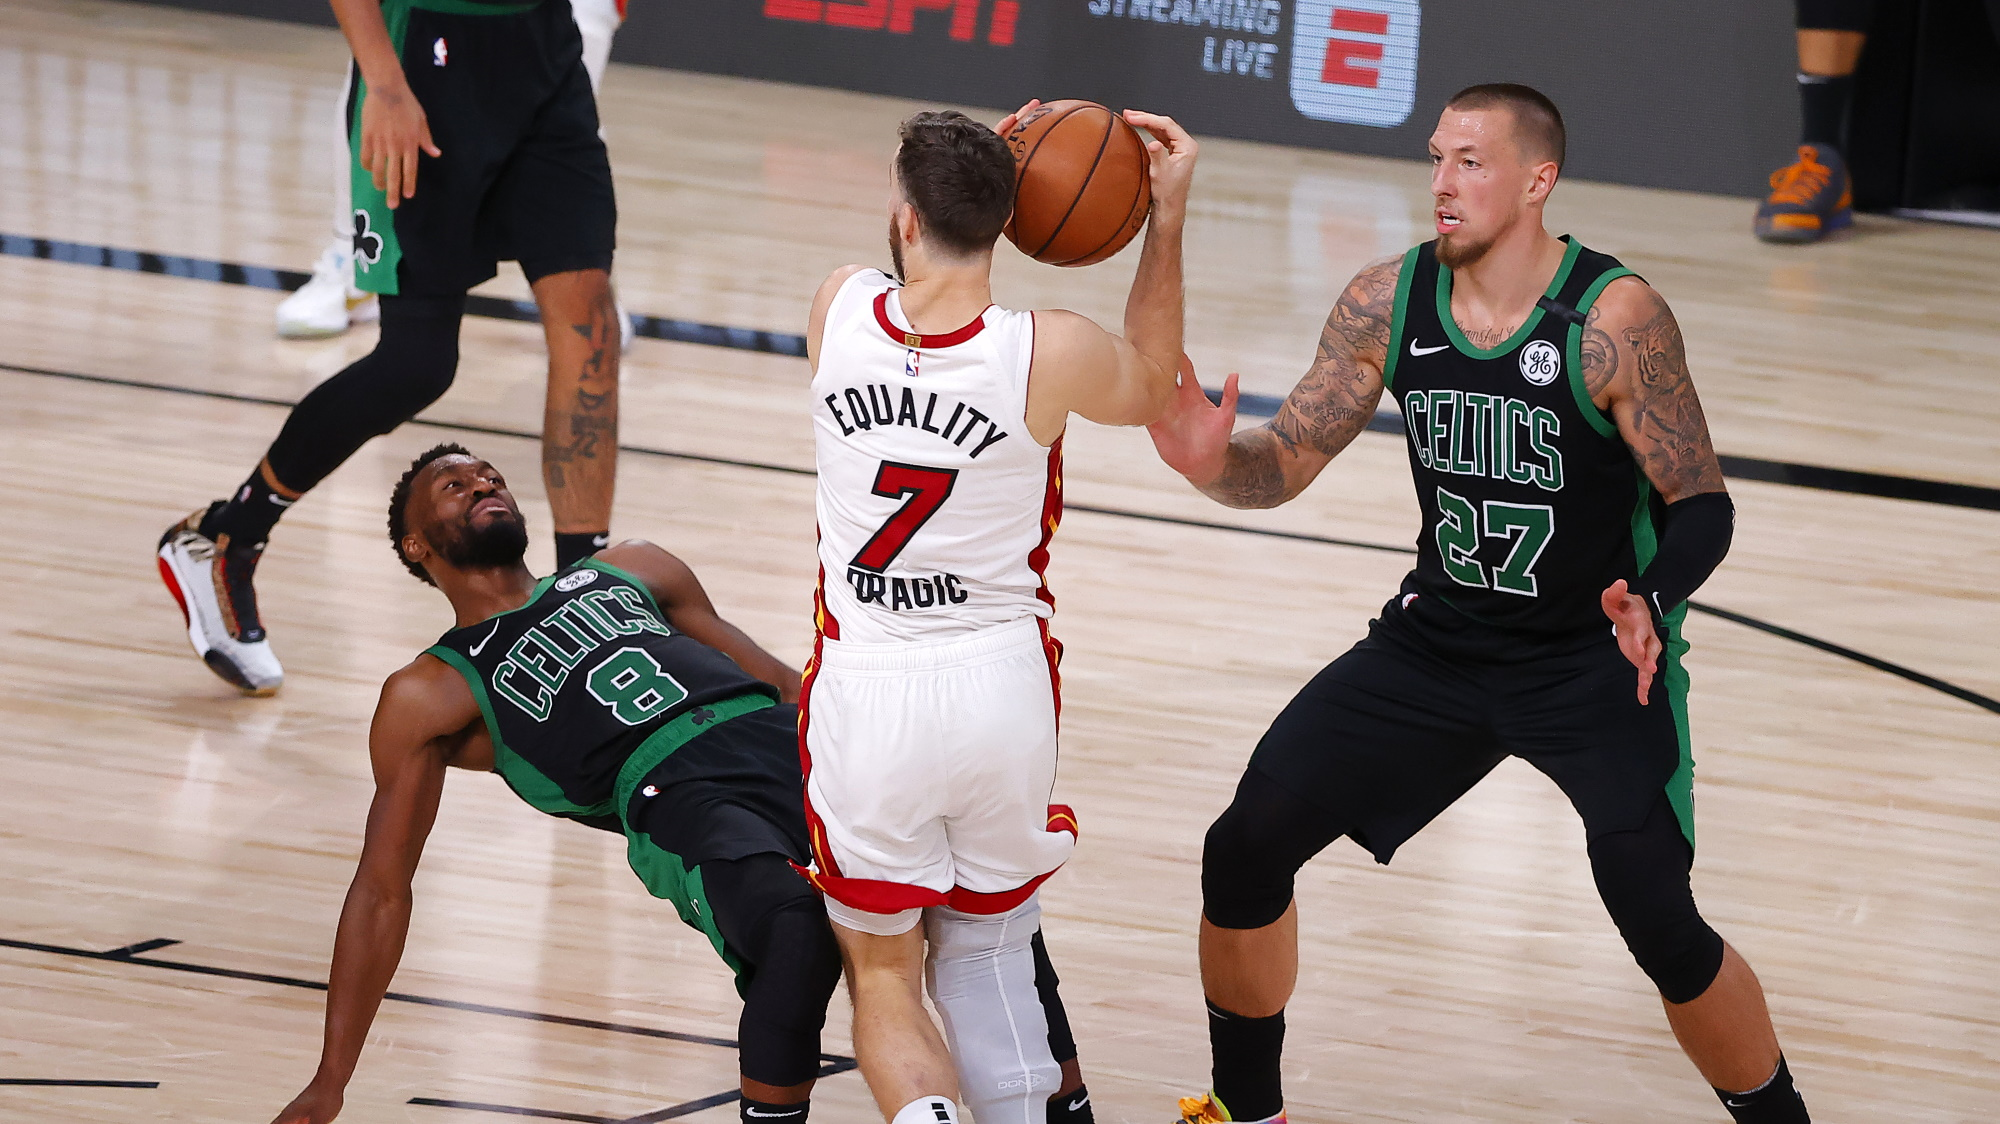 Celtics vs Heat live stream: how to watch game 3 of NBA playoffs 2020 from anywhere thumbnail